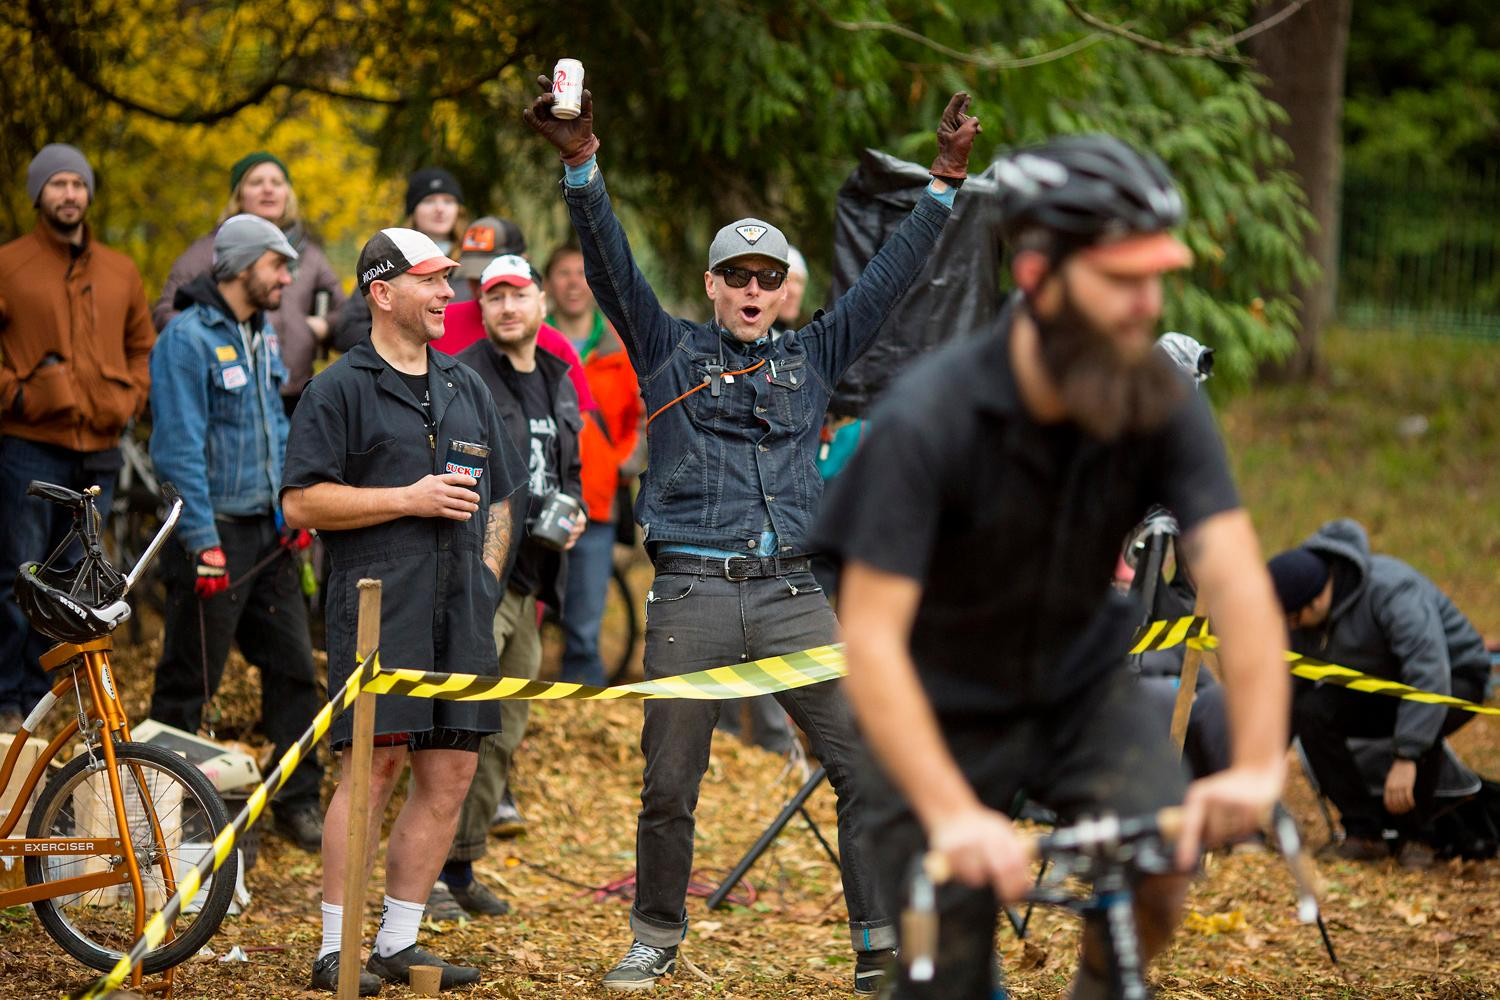 Just when you thought you'd seen it all! Cyclocross is a super specific type of bicycle racing, and Seattle had it's very own event this past weekend (November 19, 2017). Racers participated in the off-road/on-road course, which sometimes included pavement, sometimes grass, and sometimes - mud! (Image: Sy Bean / Seattle Refined)